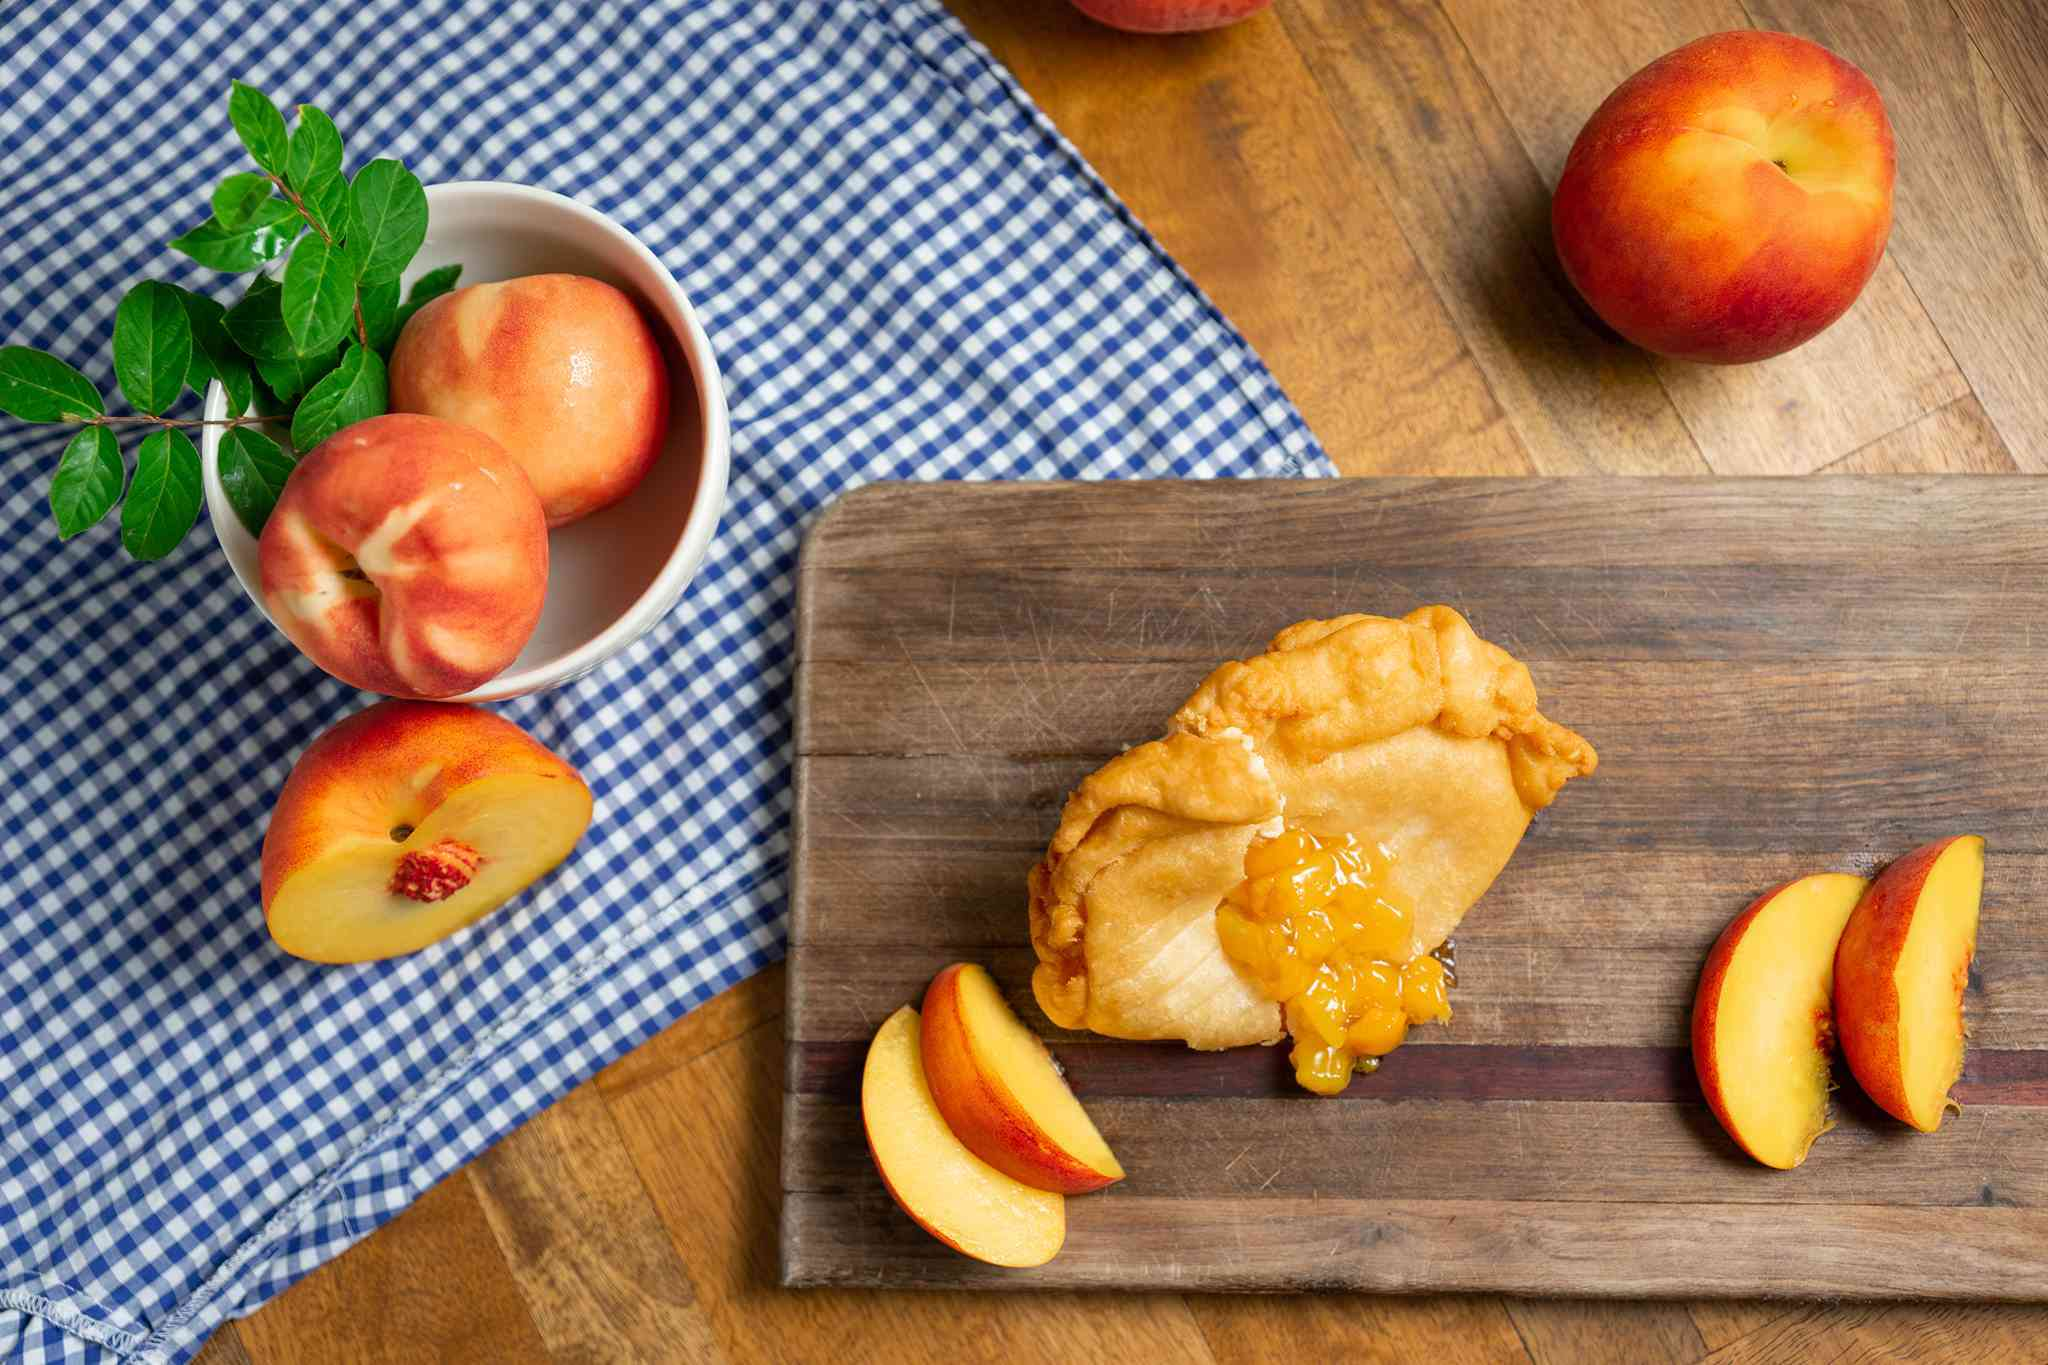 fried hand pie with peach filling coming out on a cutting board and table with sliced and whole peaches